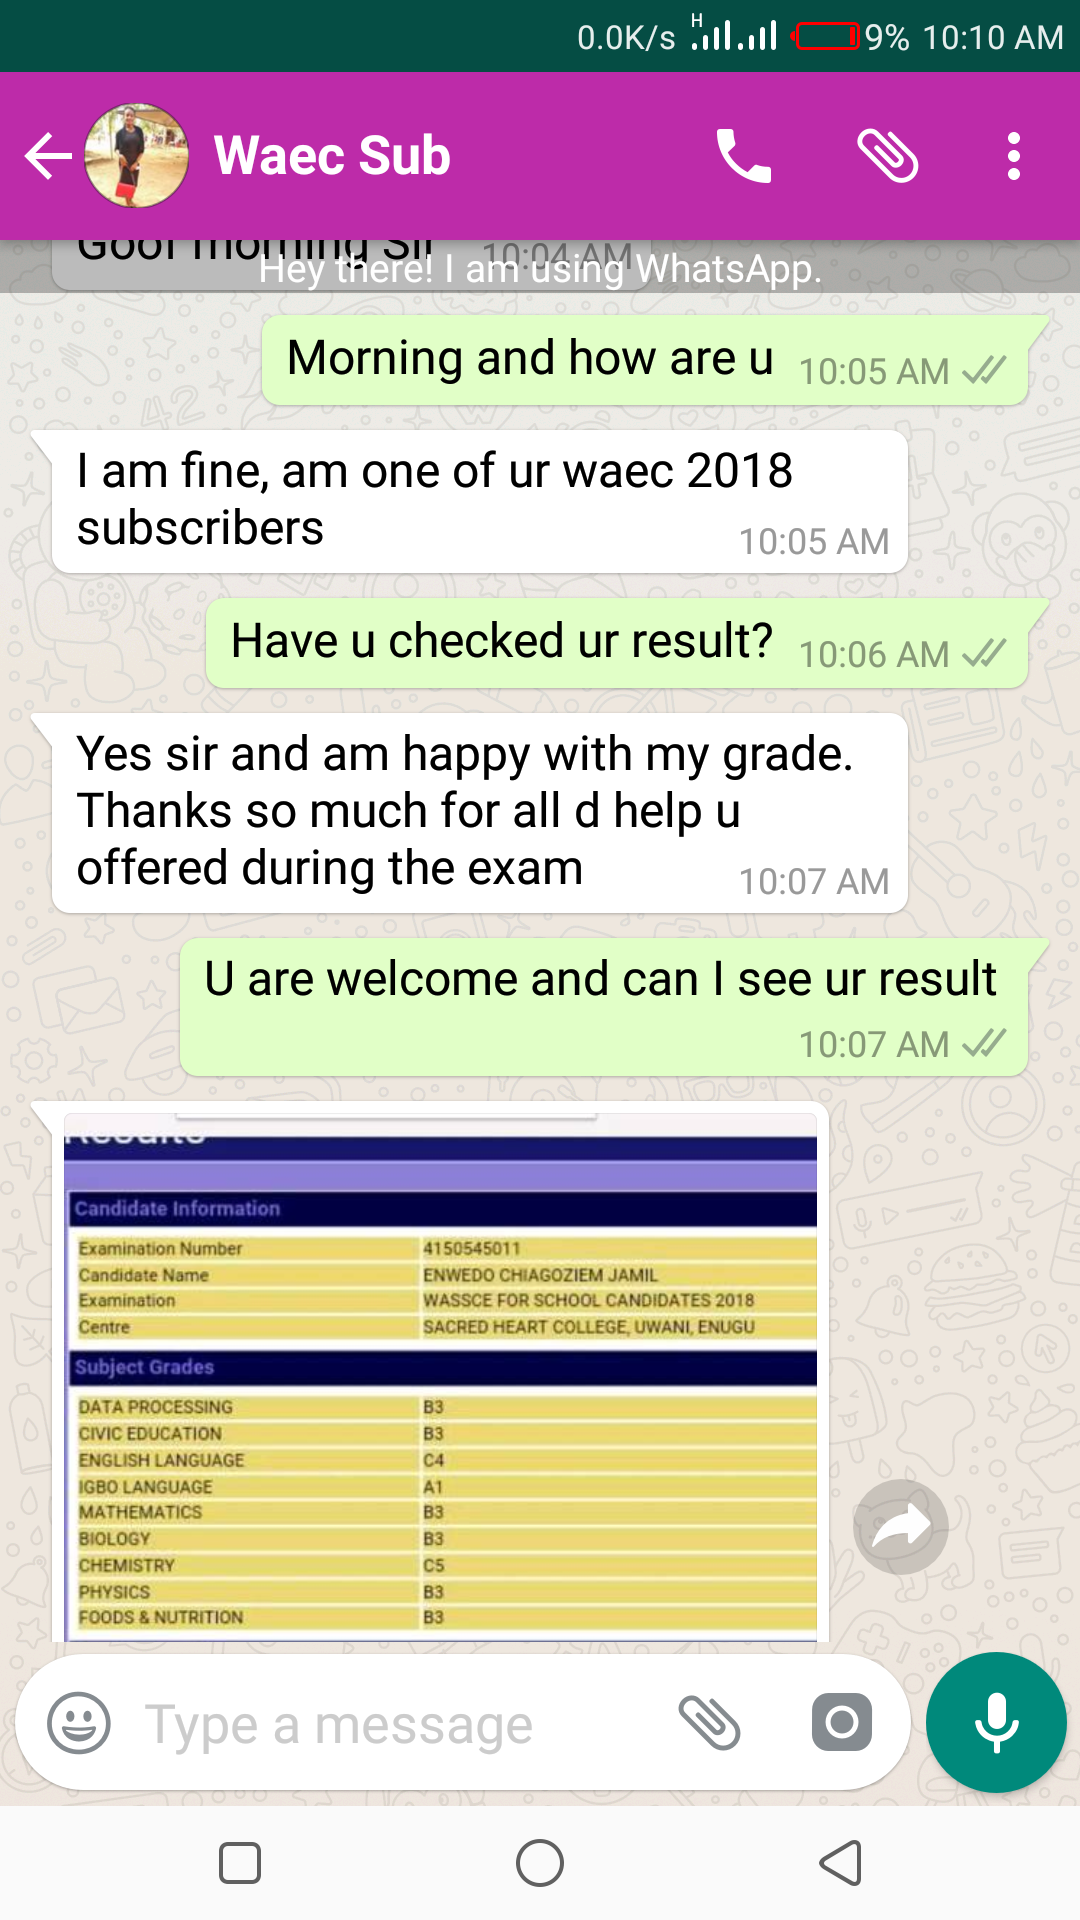 Waec 2018 english language essay questions - 2019 WAEC Sample